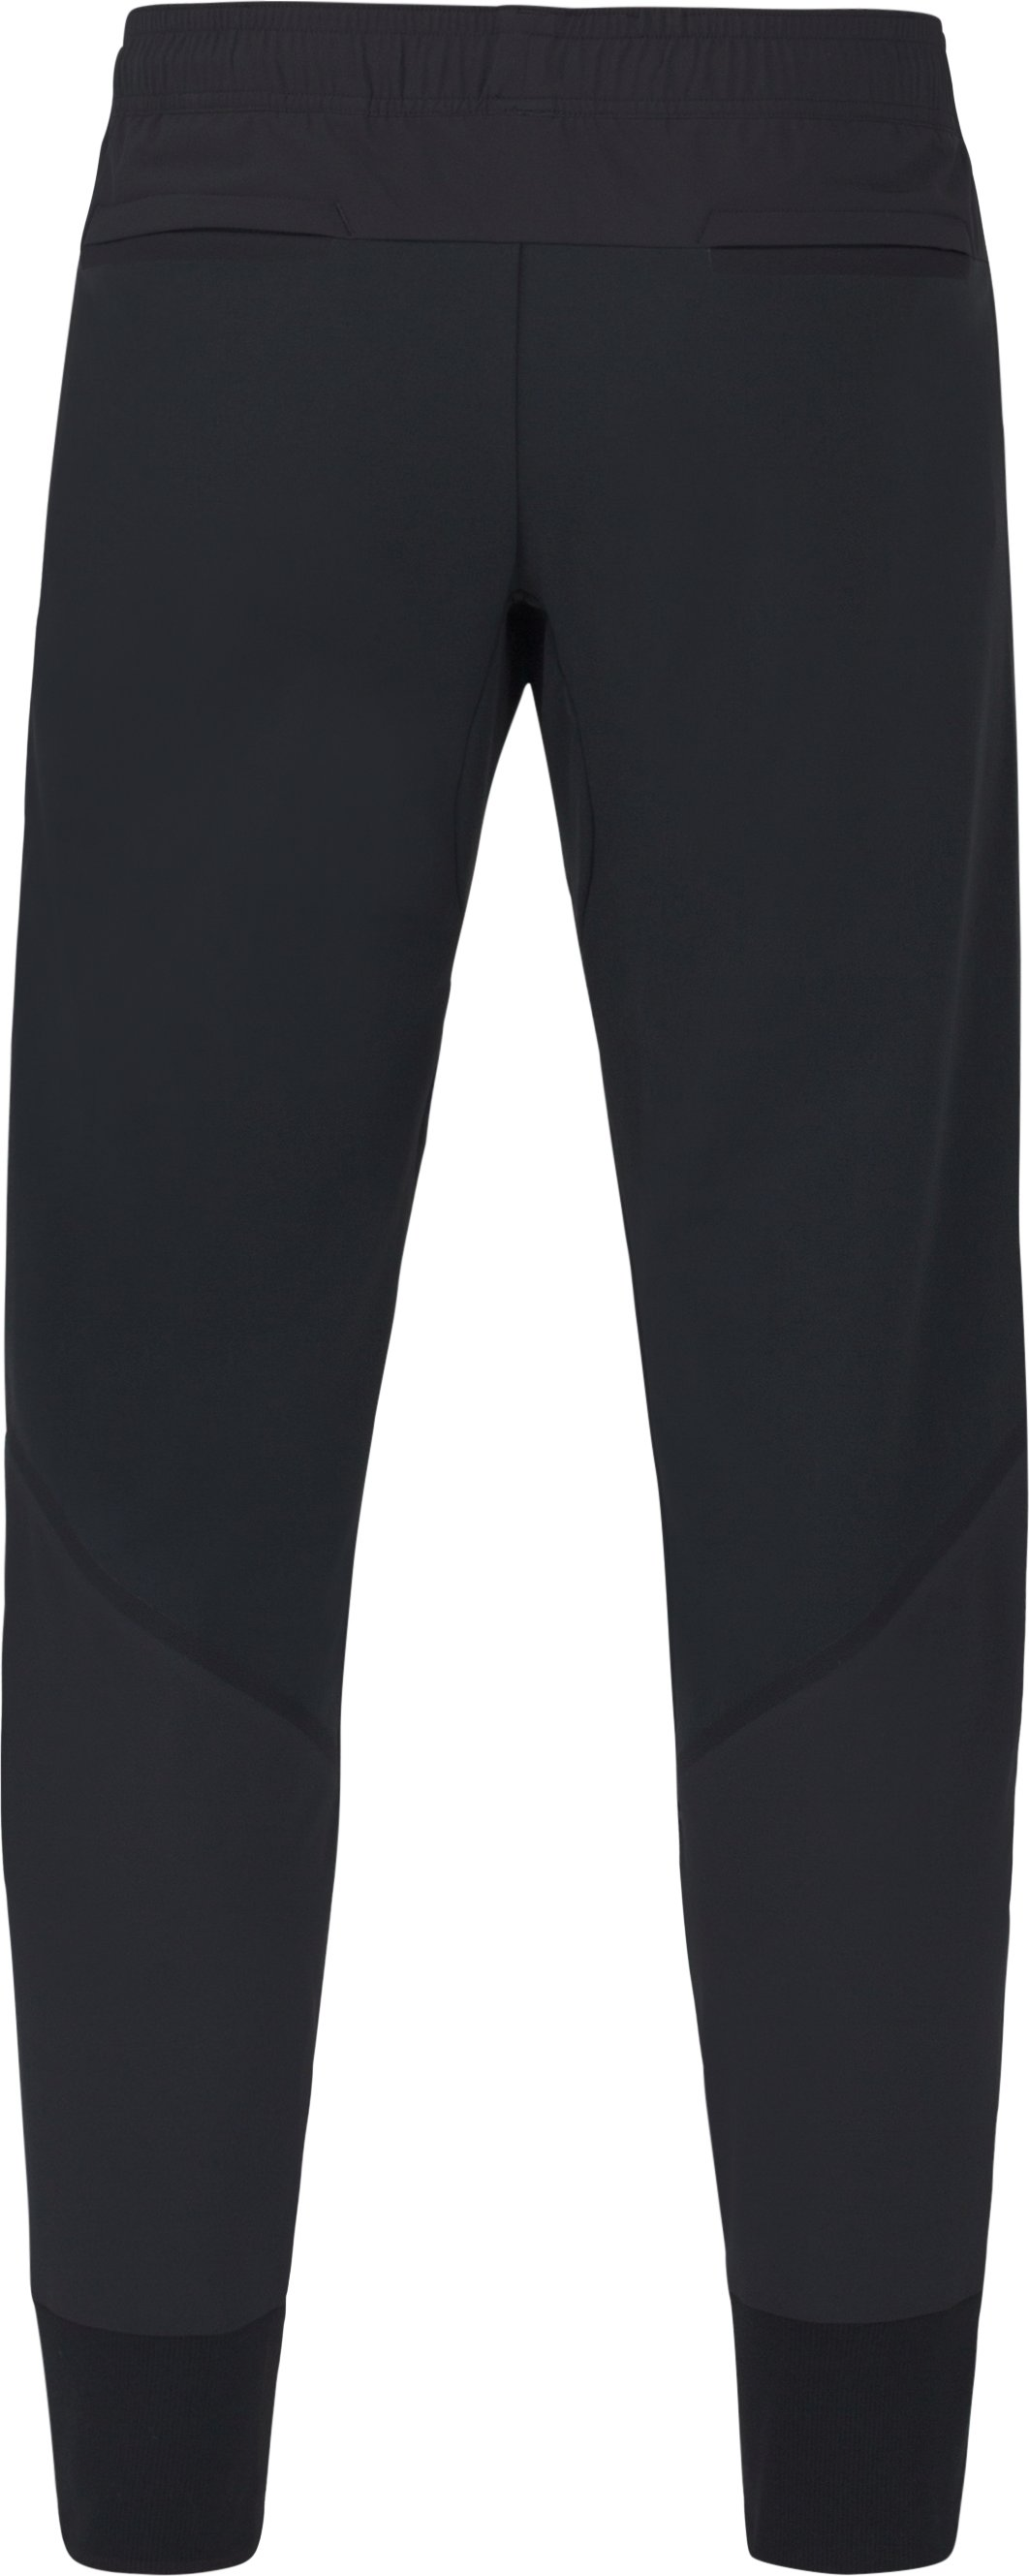 Men's UAS Pivot Stretch Crepe Sweatpants, Black ,